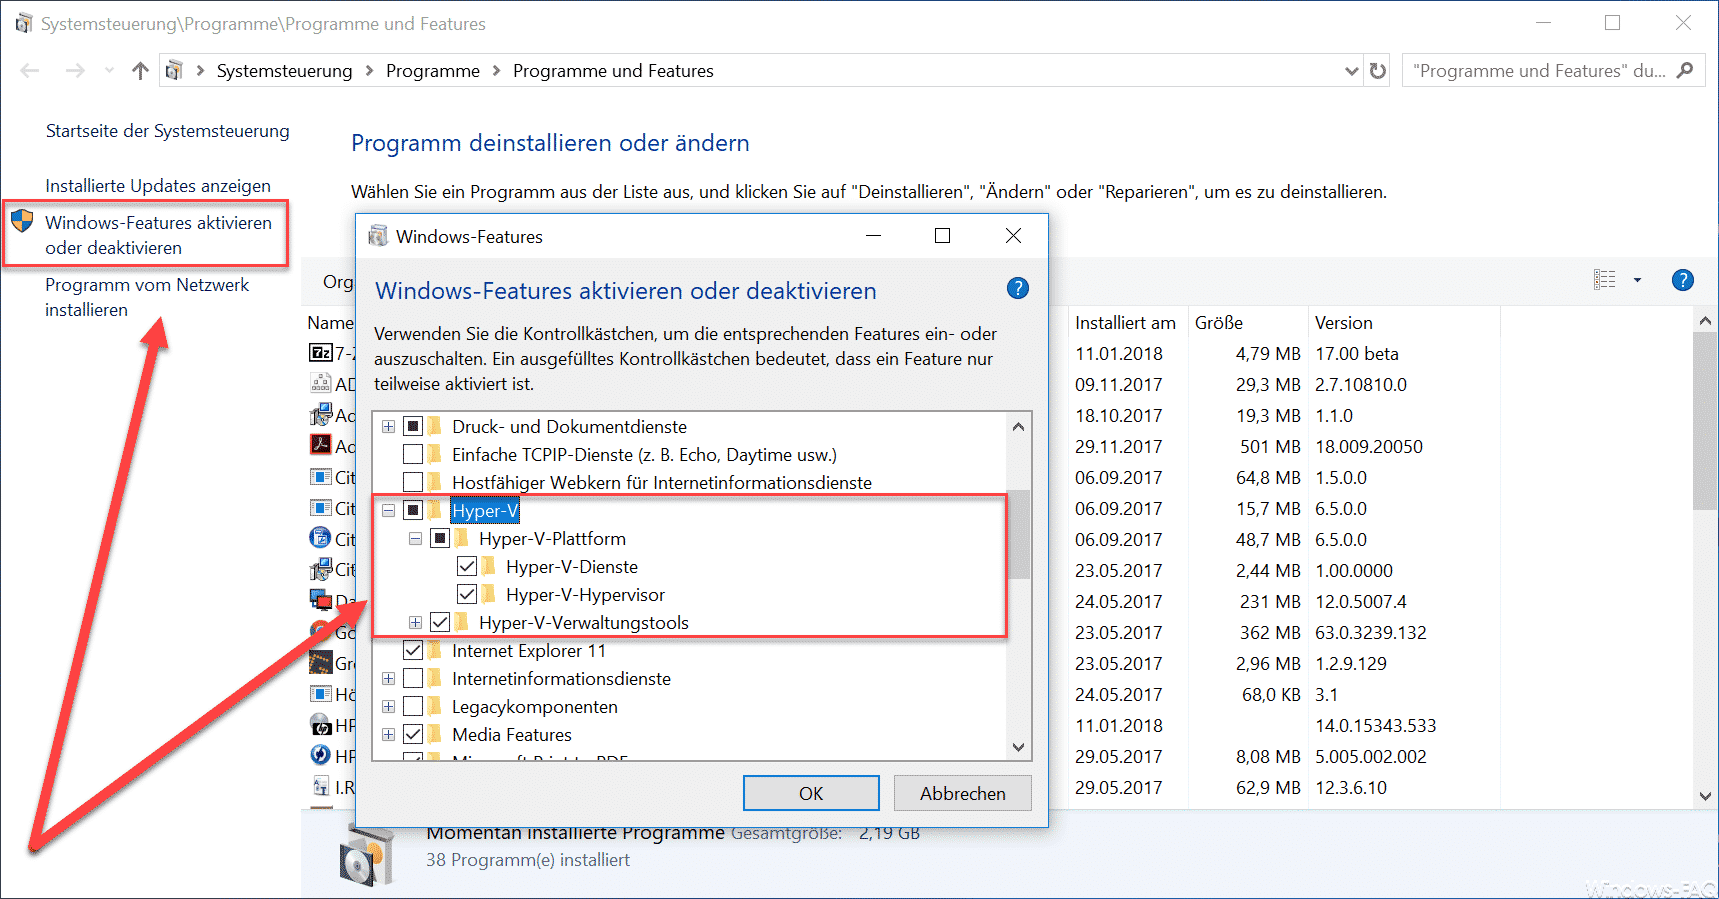 Hyper-V unter Windows 10 installieren